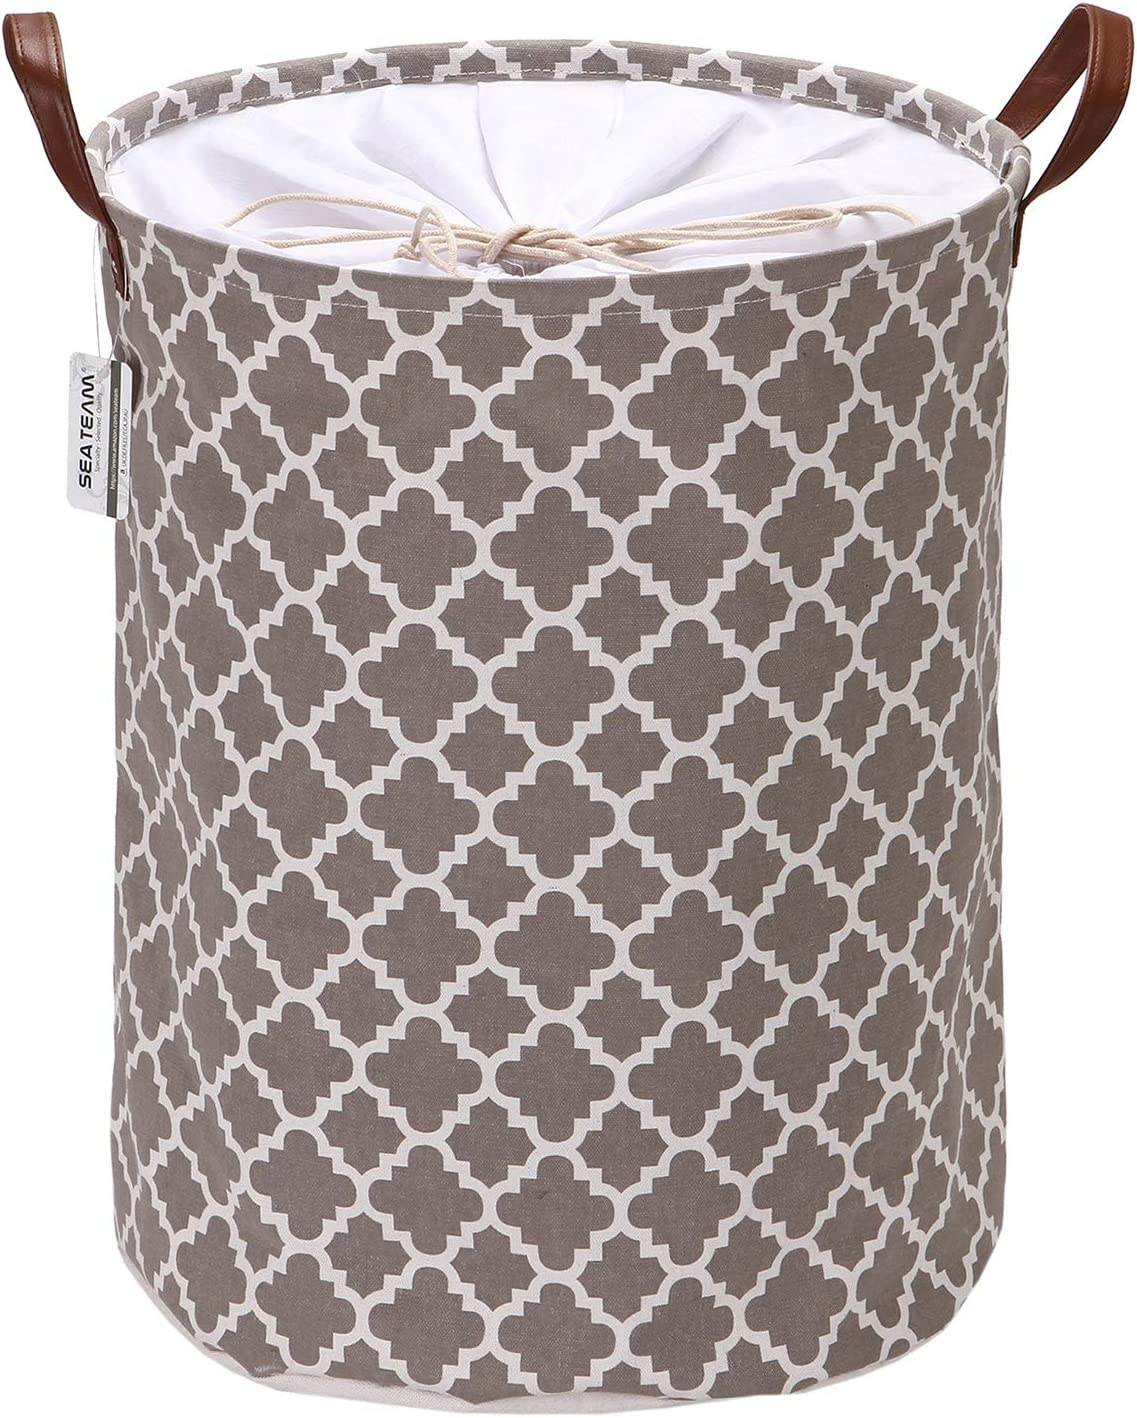 Sea Team Moroccan Lattice Pattern Laundry Hamper Canvas Fabric Laundry Basket Collapsible Storage Bin with PU Leather Handles and Drawstring Closure, 17.7 by 13.8 inches, Waterproof Inner, Grey